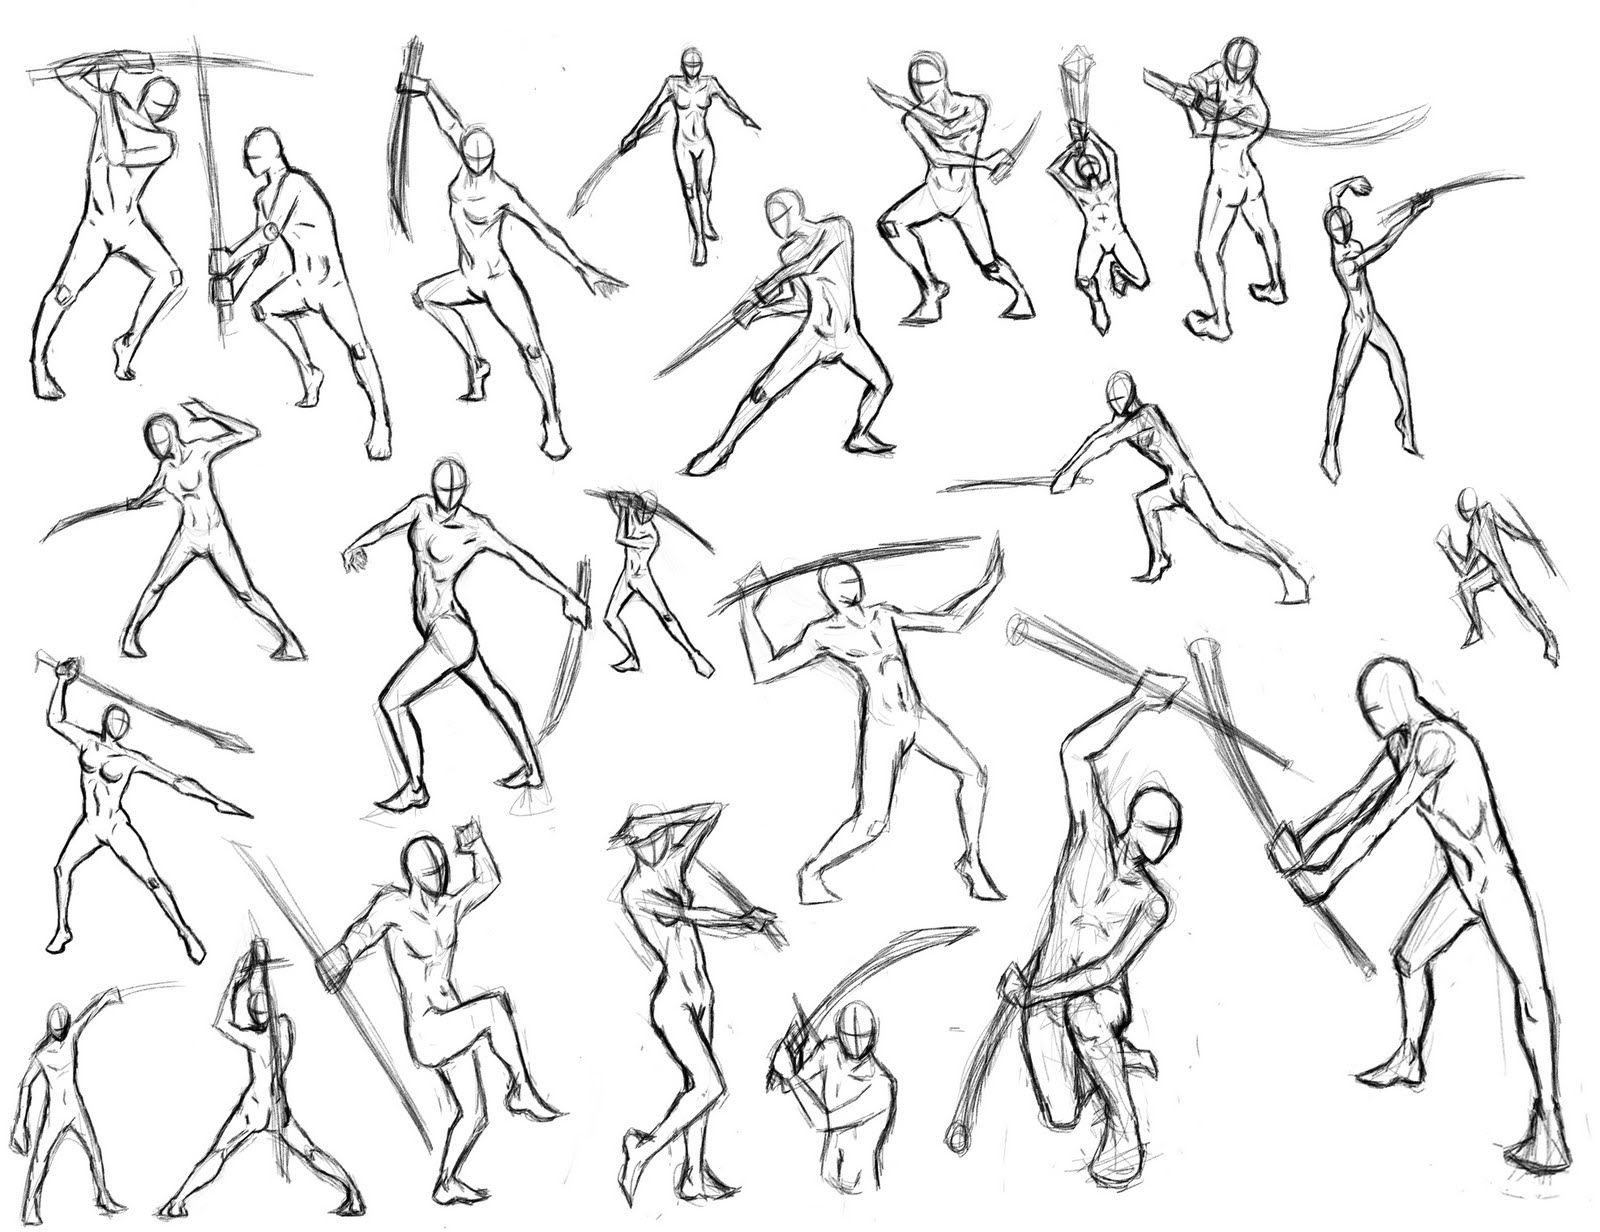 Sword Action Poses By Thealtimate Jpg 1600 1232 Figure Drawing Reference Fighting Poses Male Pose Reference